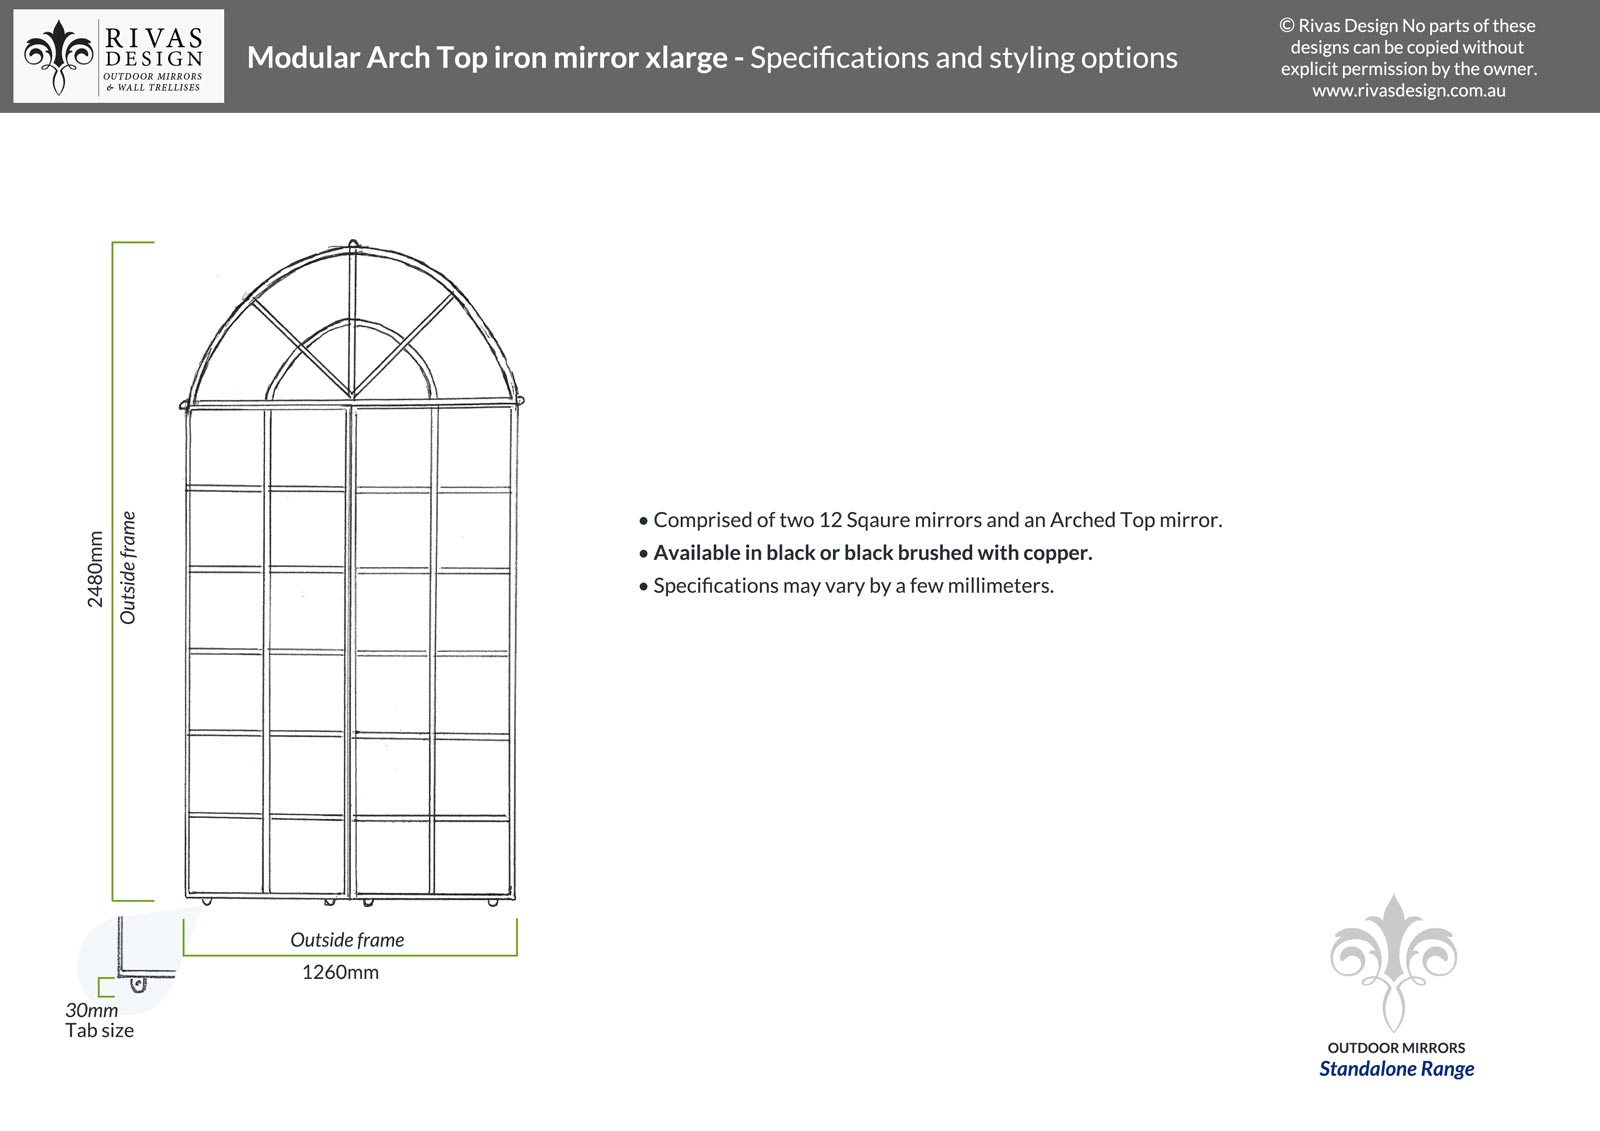 Modular Arch Top iron mirror xlarge